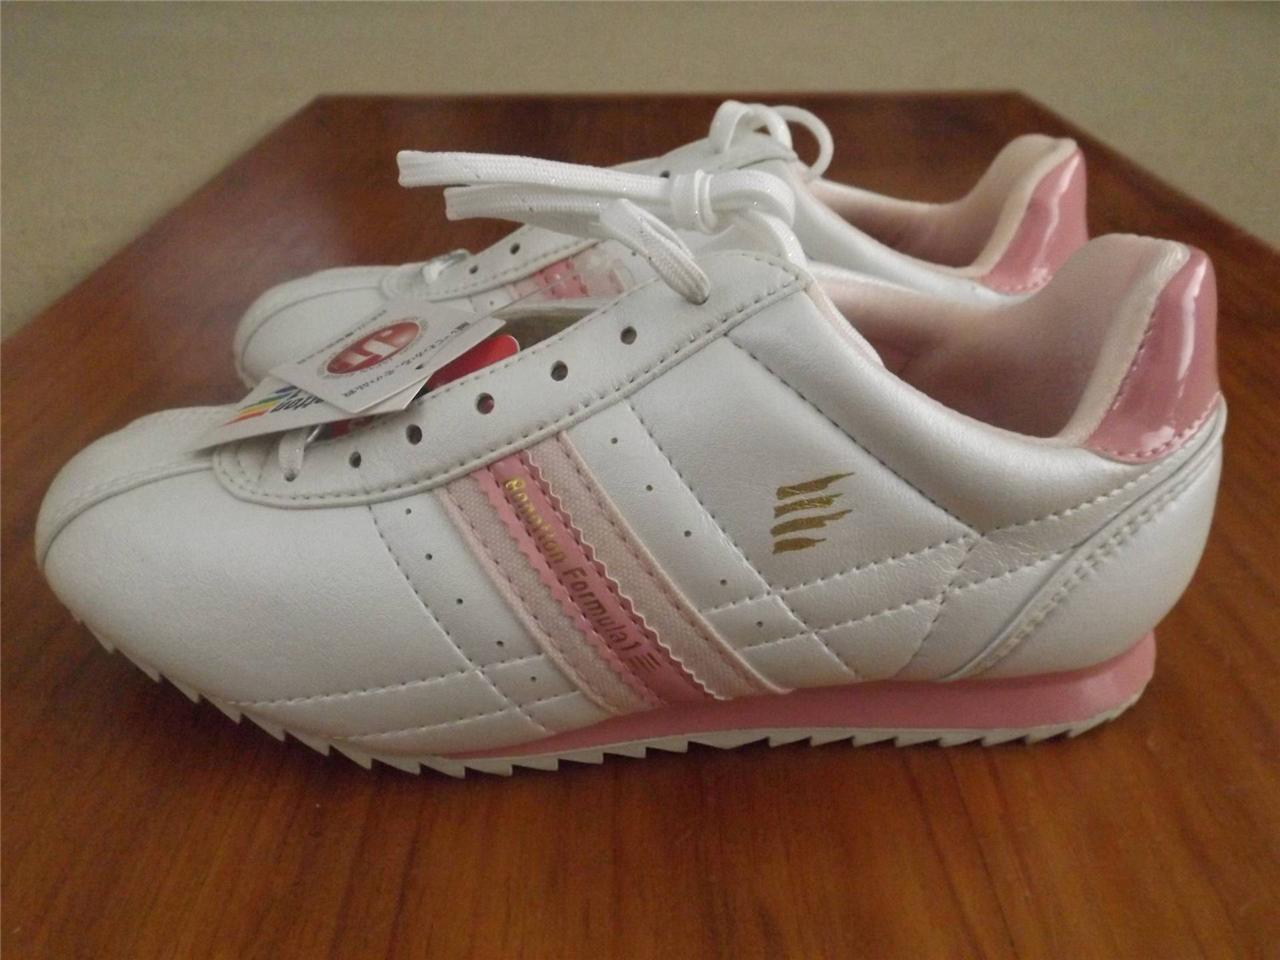 Brand-New-Benetton-formula-1-women-girls-shoes-cream-pink-lace-up-AUS-5-5